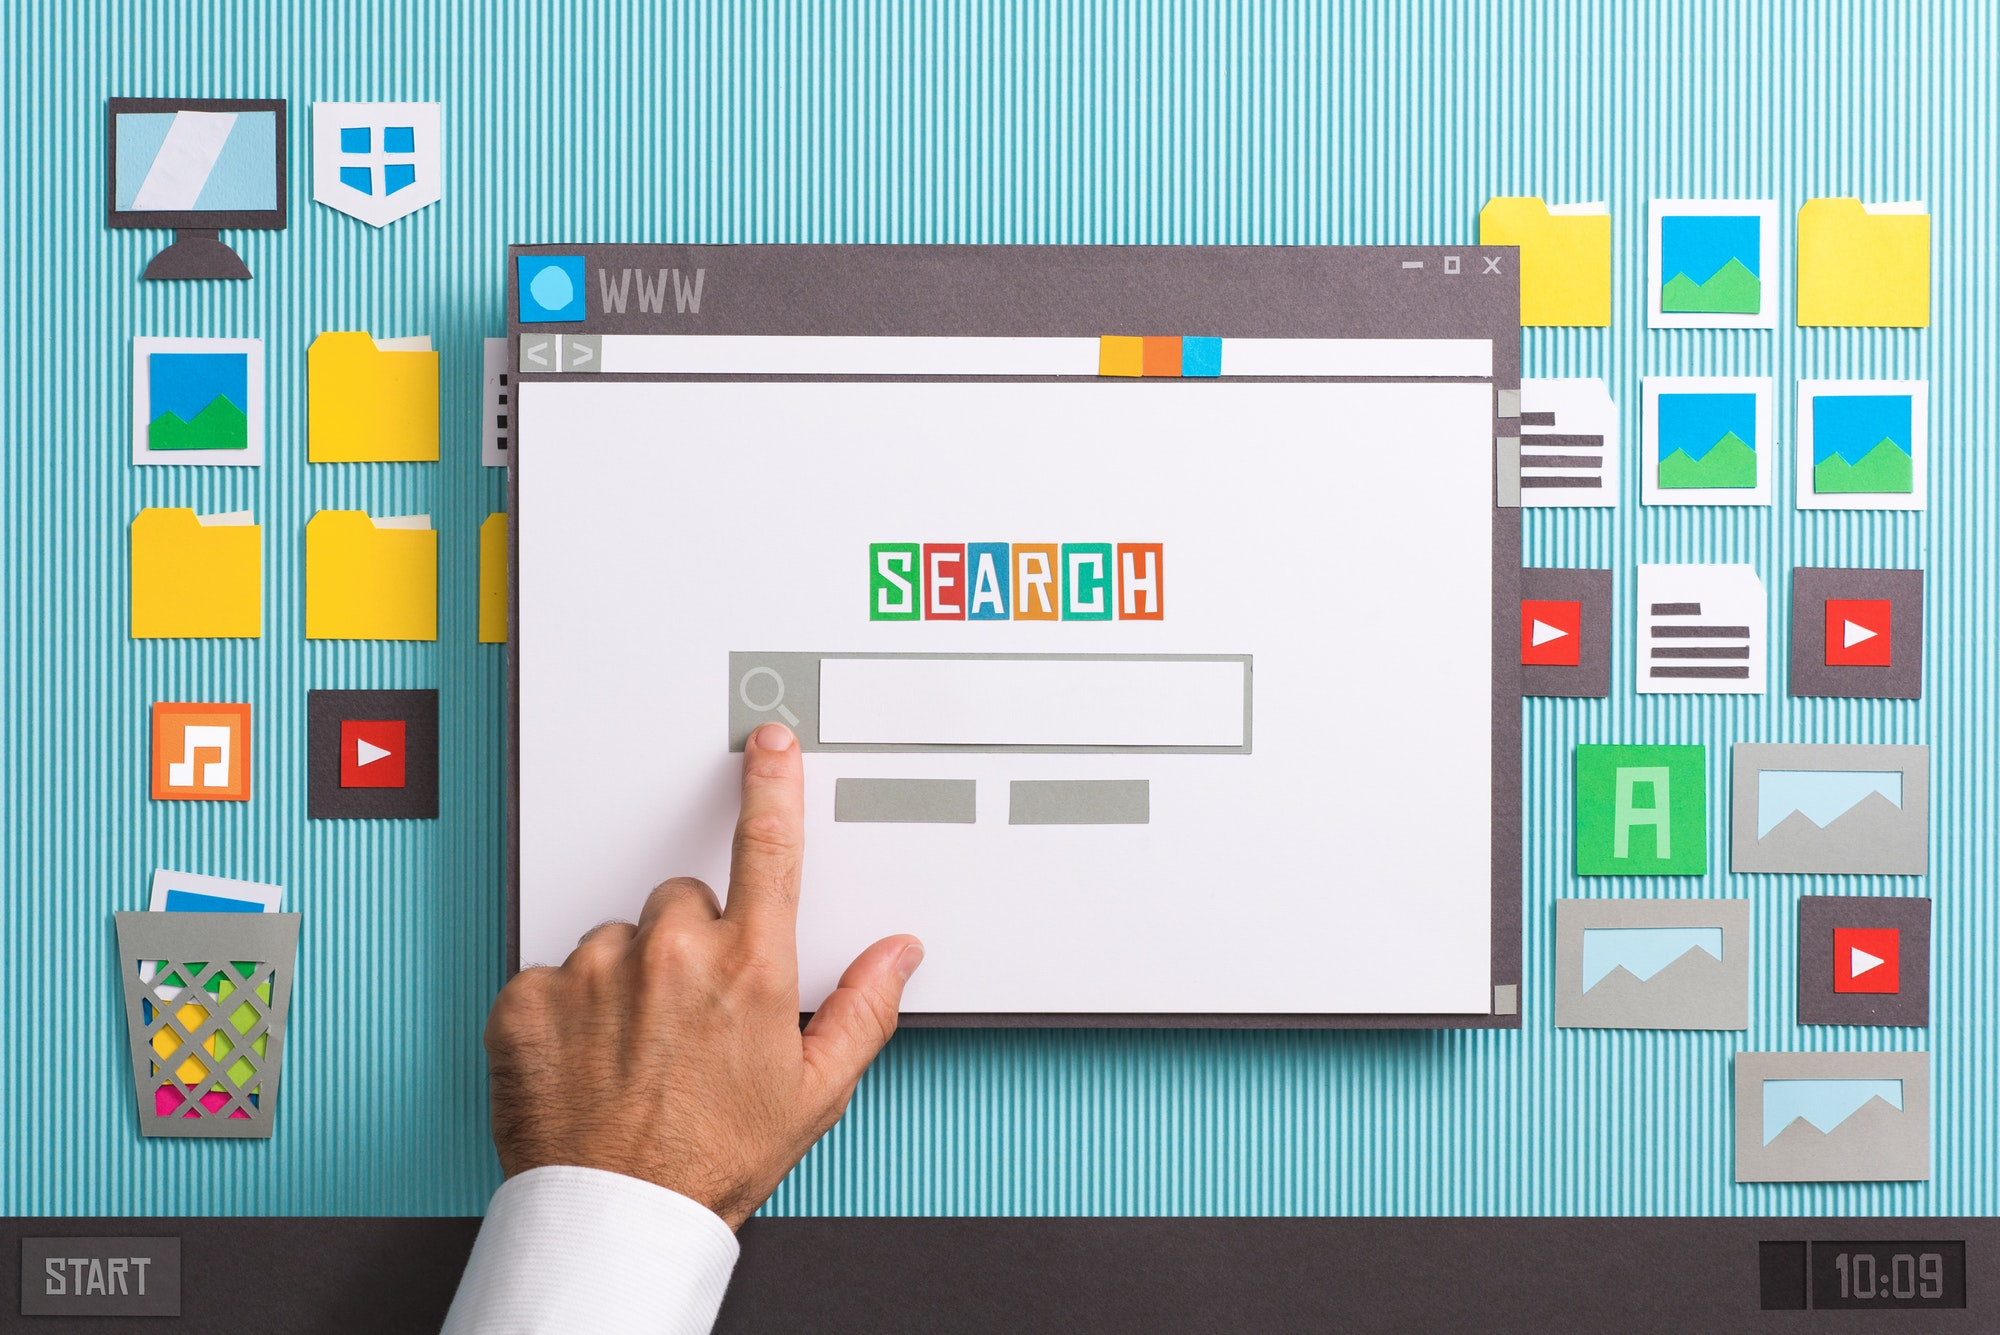 Search engine home page by stokkete